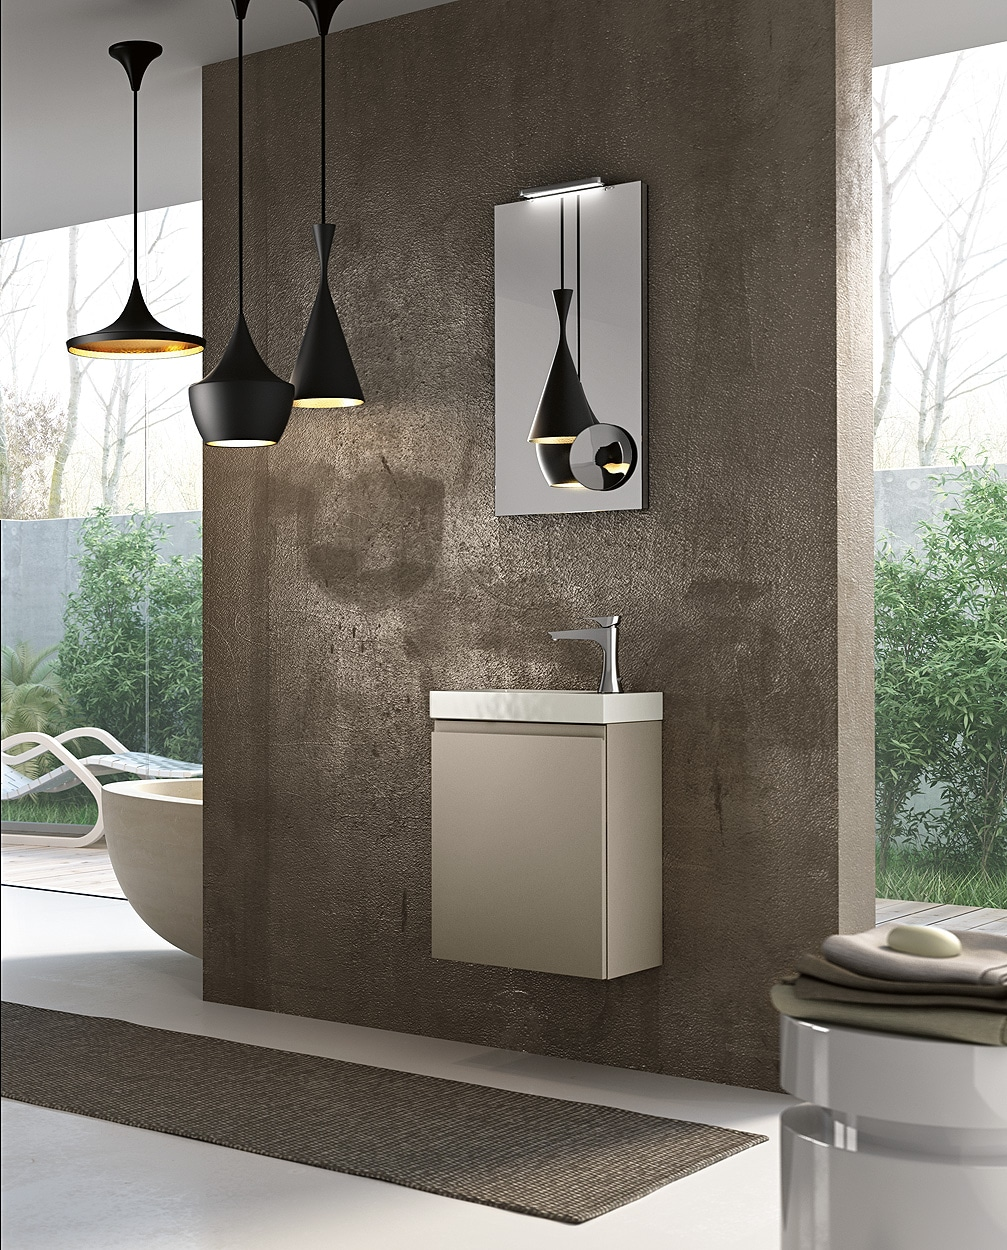 https://www.europeankitchencenter.com/wp-content/gallery/bathroom-gb-compact/DERBY02.jpg